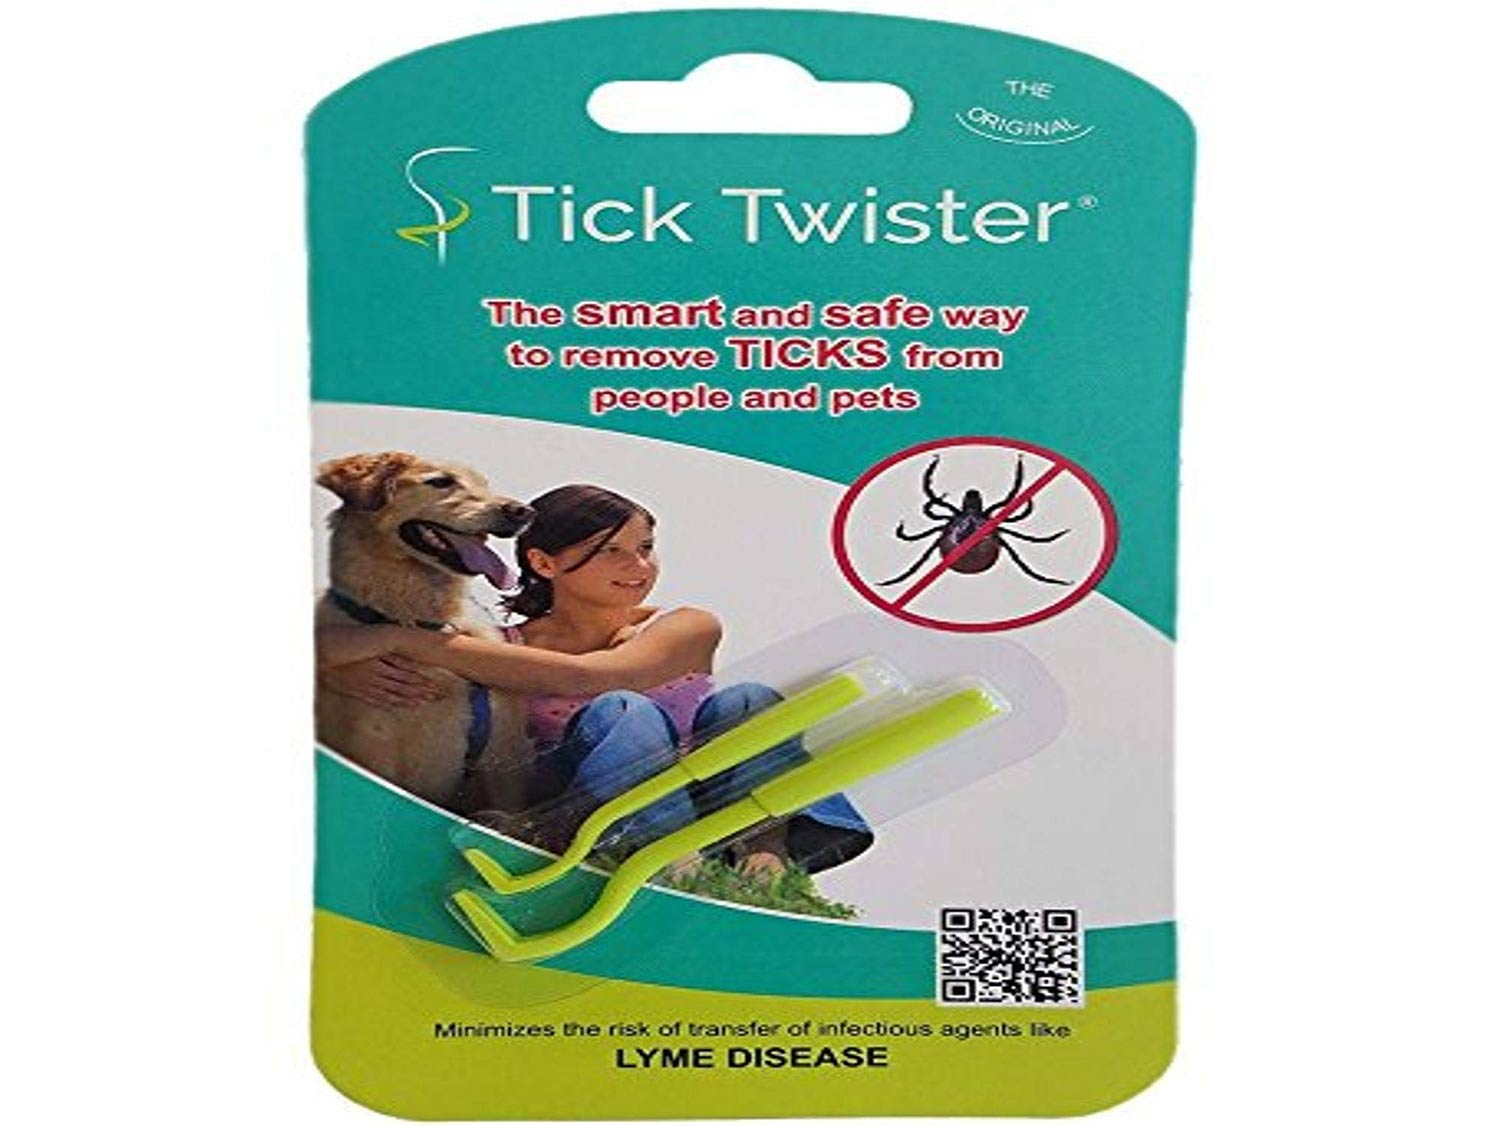 Tick Twister remover tool